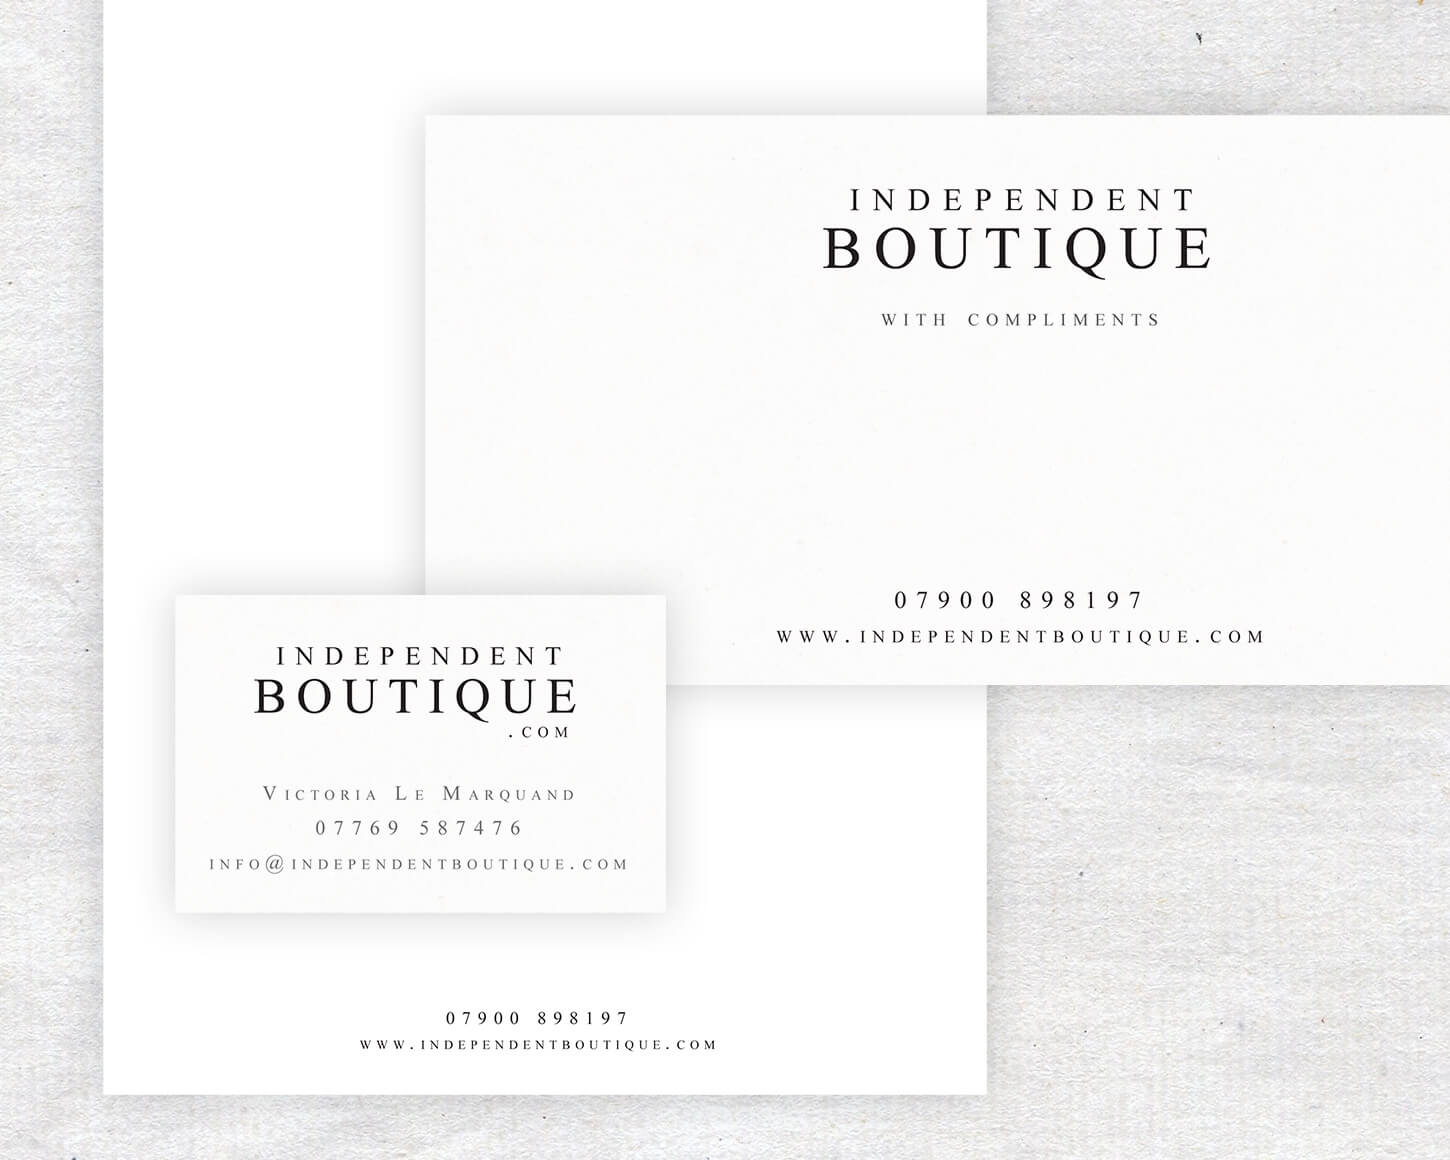 Independent Boutique branding